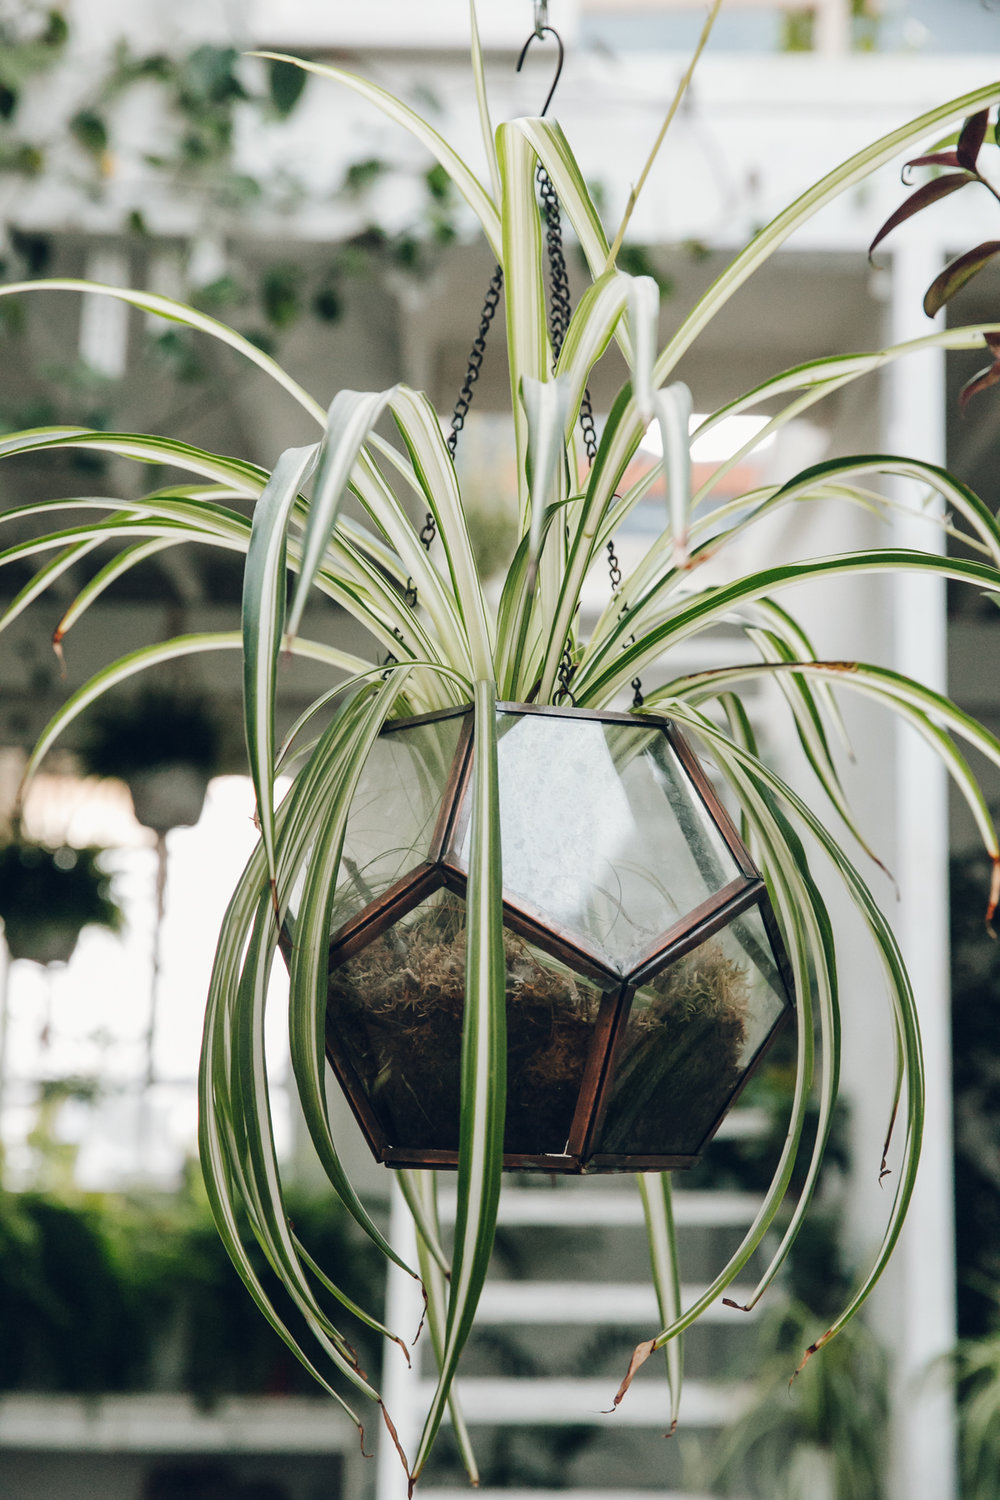 A spider plant in a hanging glass planter - at Clapton Tram in London.